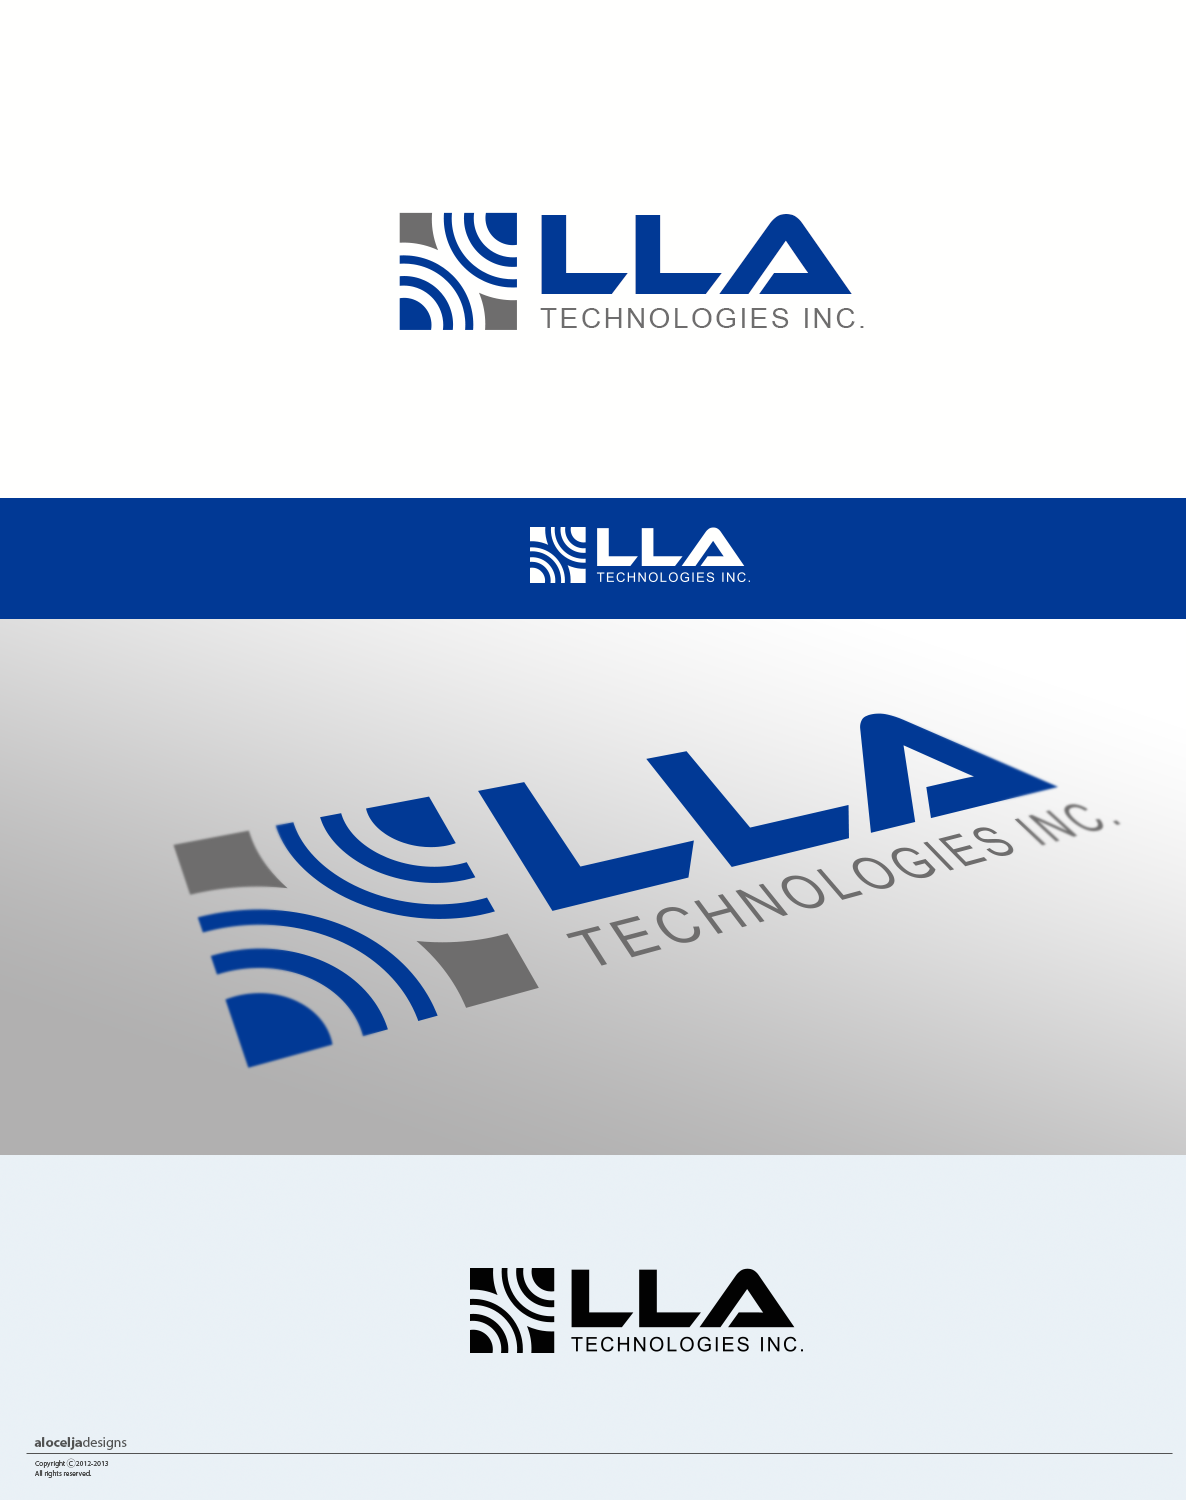 Logo Design by alocelja - Entry No. 68 in the Logo Design Contest Inspiring Logo Design for LLA Technologies Inc..